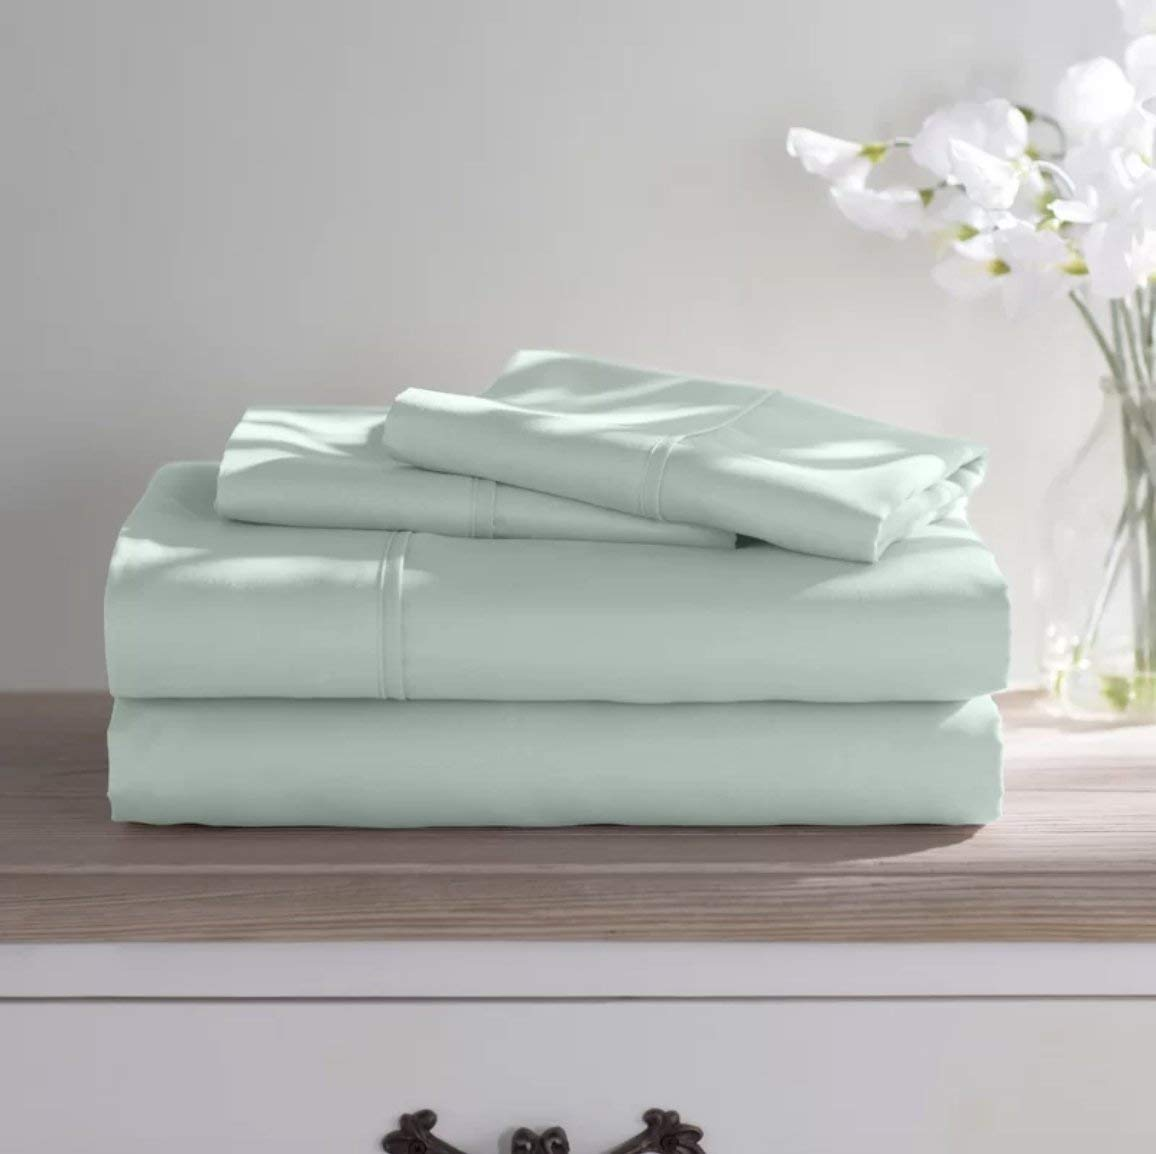 Bed Bath Fashions Premium Dorm Room 1800 Series Double Brushed Microfiber Sheets 3 Piece Sheet Set Twin Extra Long XL - Ultra Soft College Bedding Hypoallergenic and Wrinkle Free (Mint)